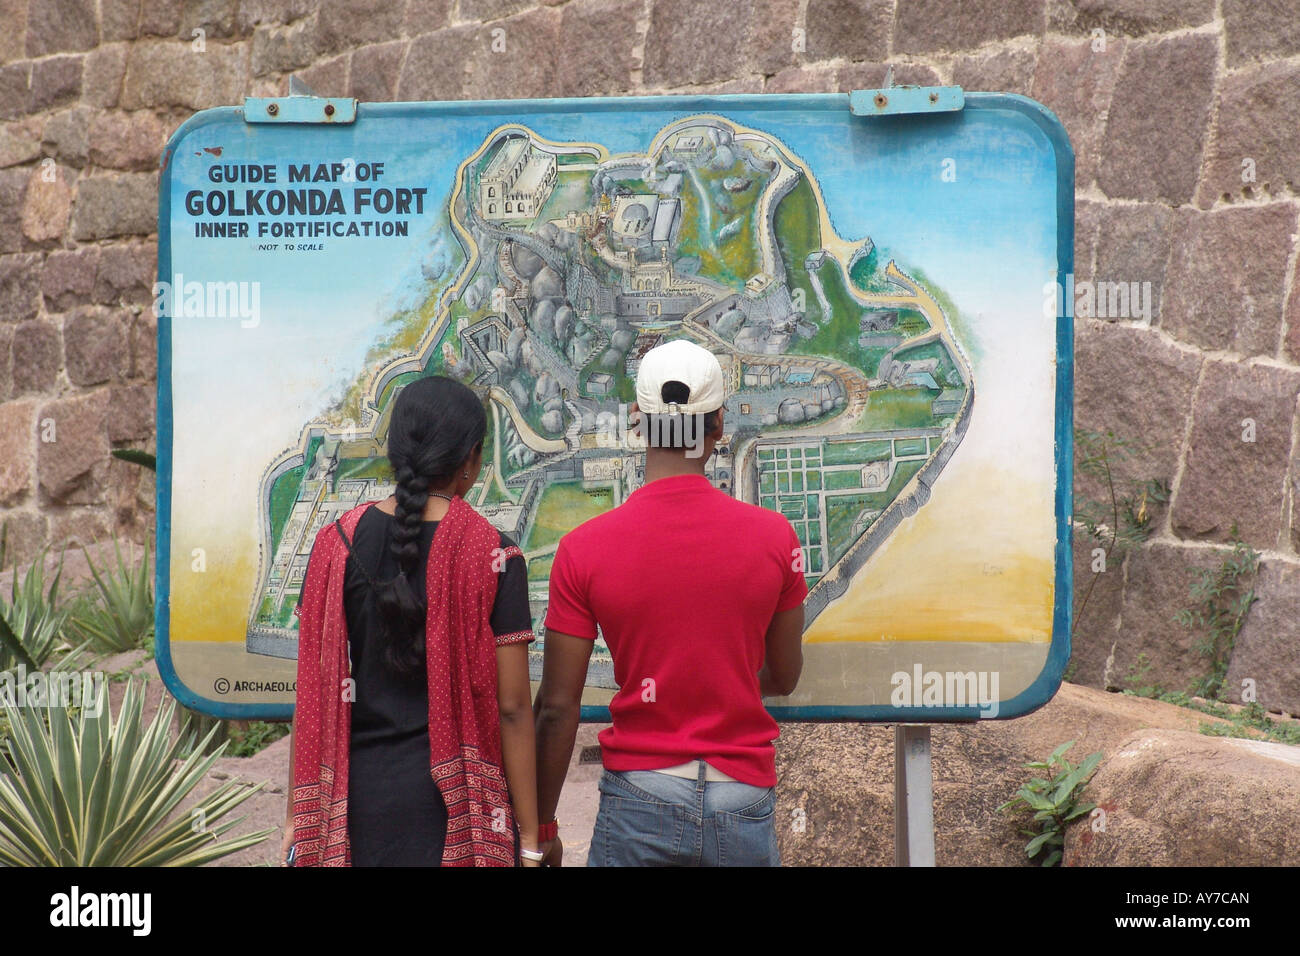 A young couple watching the Golconda fort map, Hyderabad ... on hindu kush map, hampshire map, lebanon map, khyber pass map, la salle map, harvard map, spring creek map, st. charles map, monticello map, elko map, savannah map, belleville map, elmhurst map, boston map, crystal lake map, oak forest map, highland map,